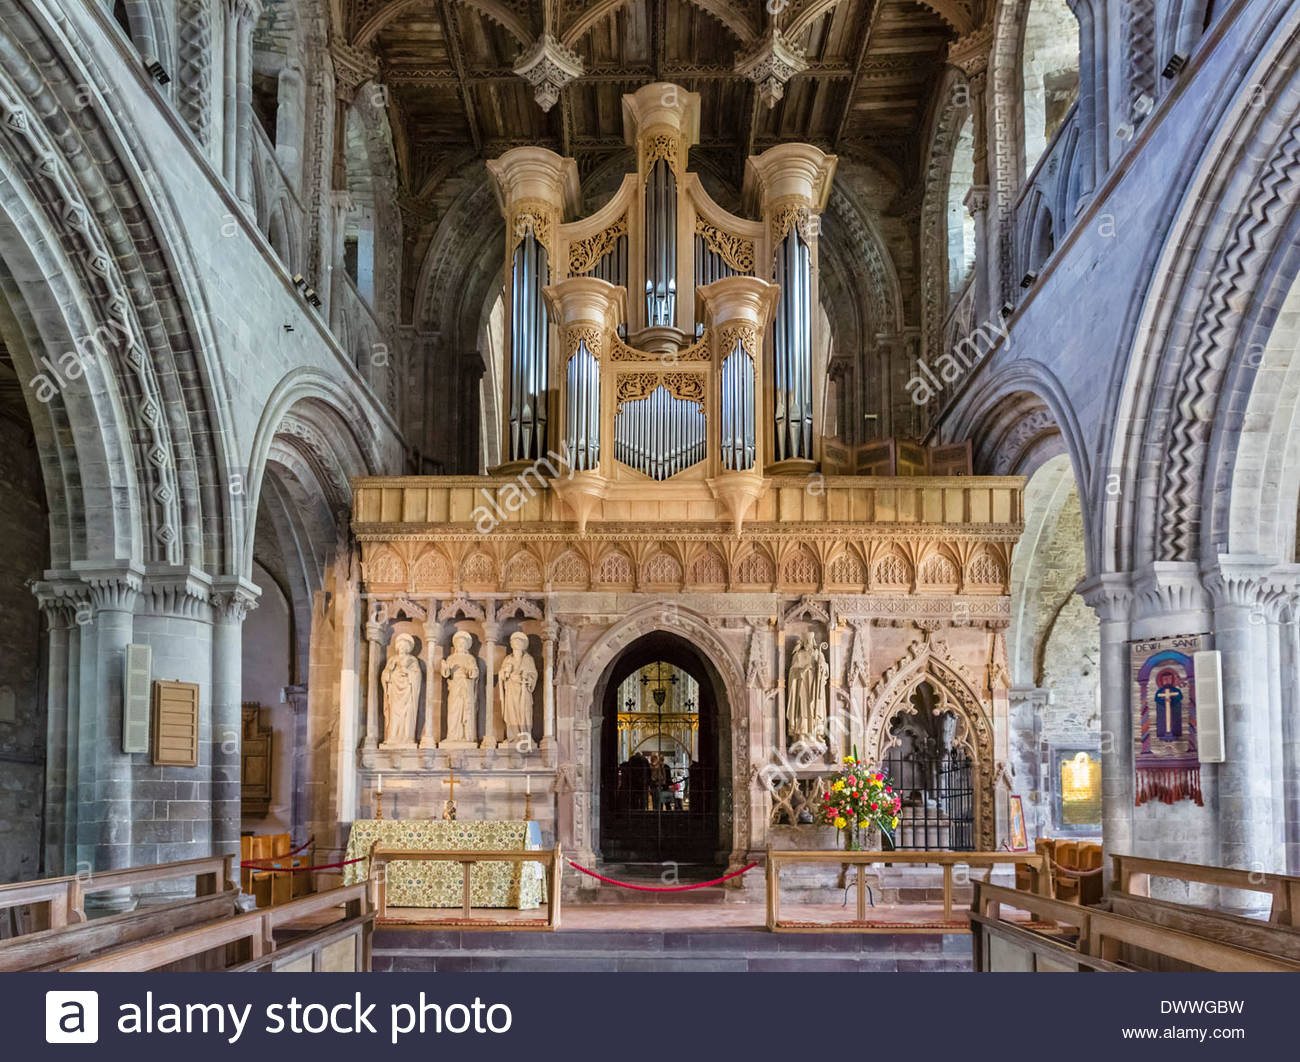 St. David's Cathedral South Wales, The organ in St David's Cathedral, St David's, Pembrokeshire ...